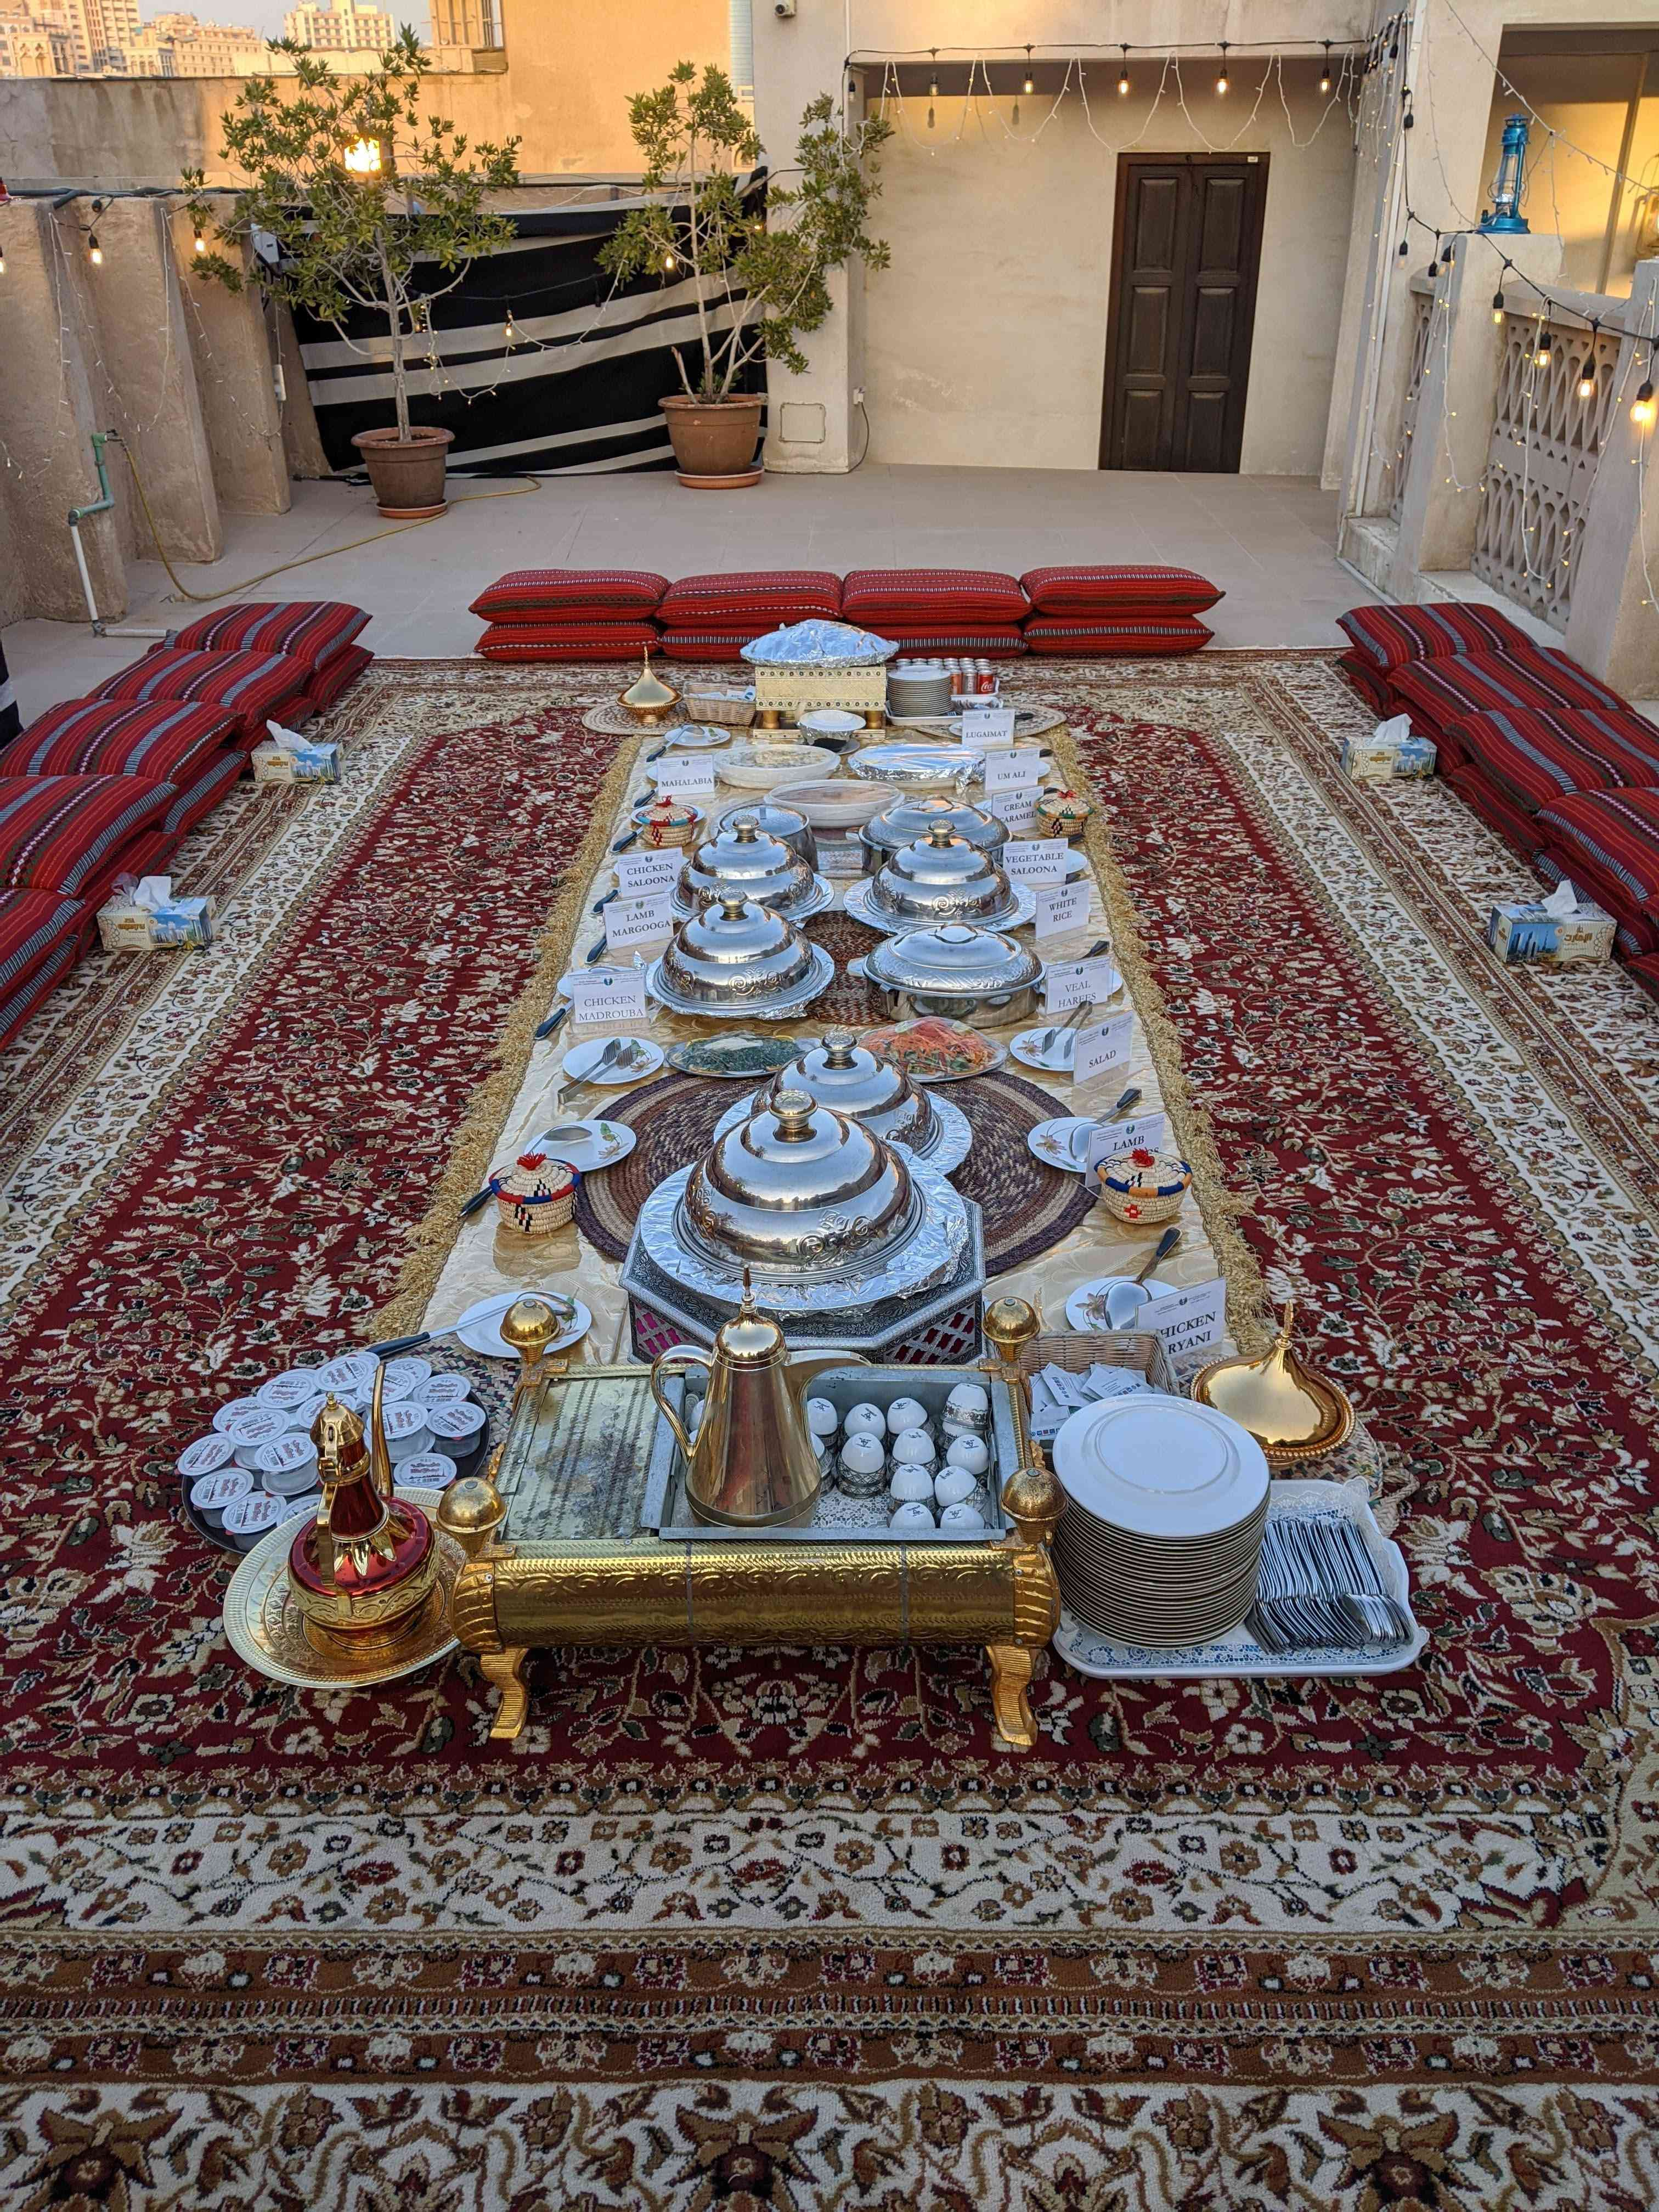 low table on an ornate rug set with plates and metal serving trays. there are red cushions around the perimeter of the rug